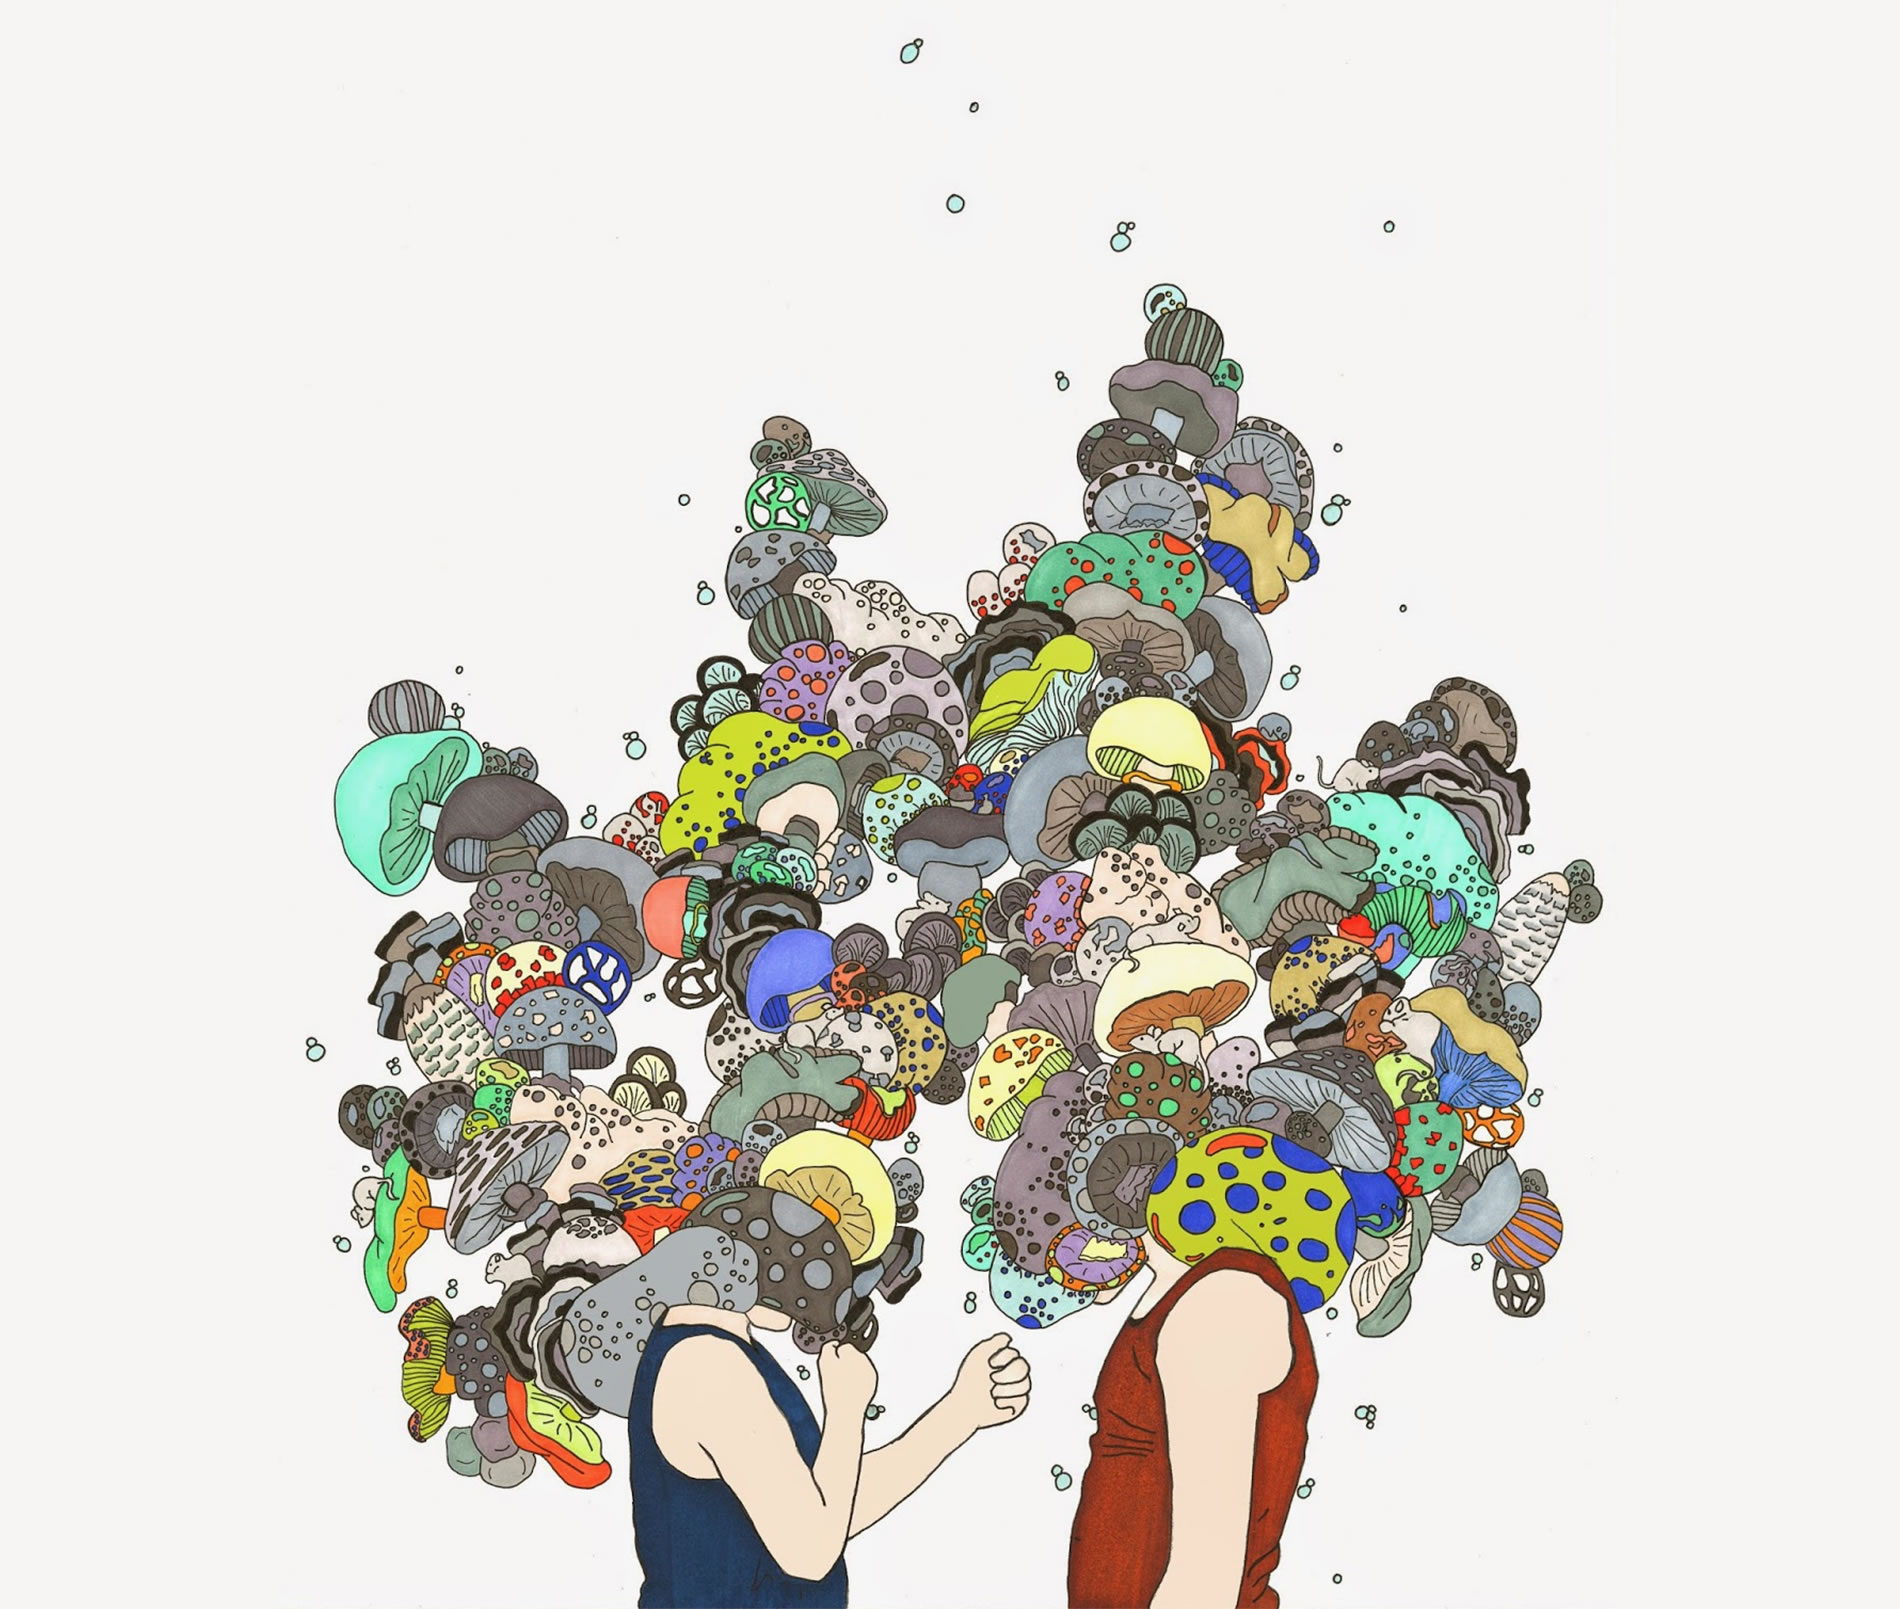 Head Full of Dreams: Illustrations by Rachel Fagiano